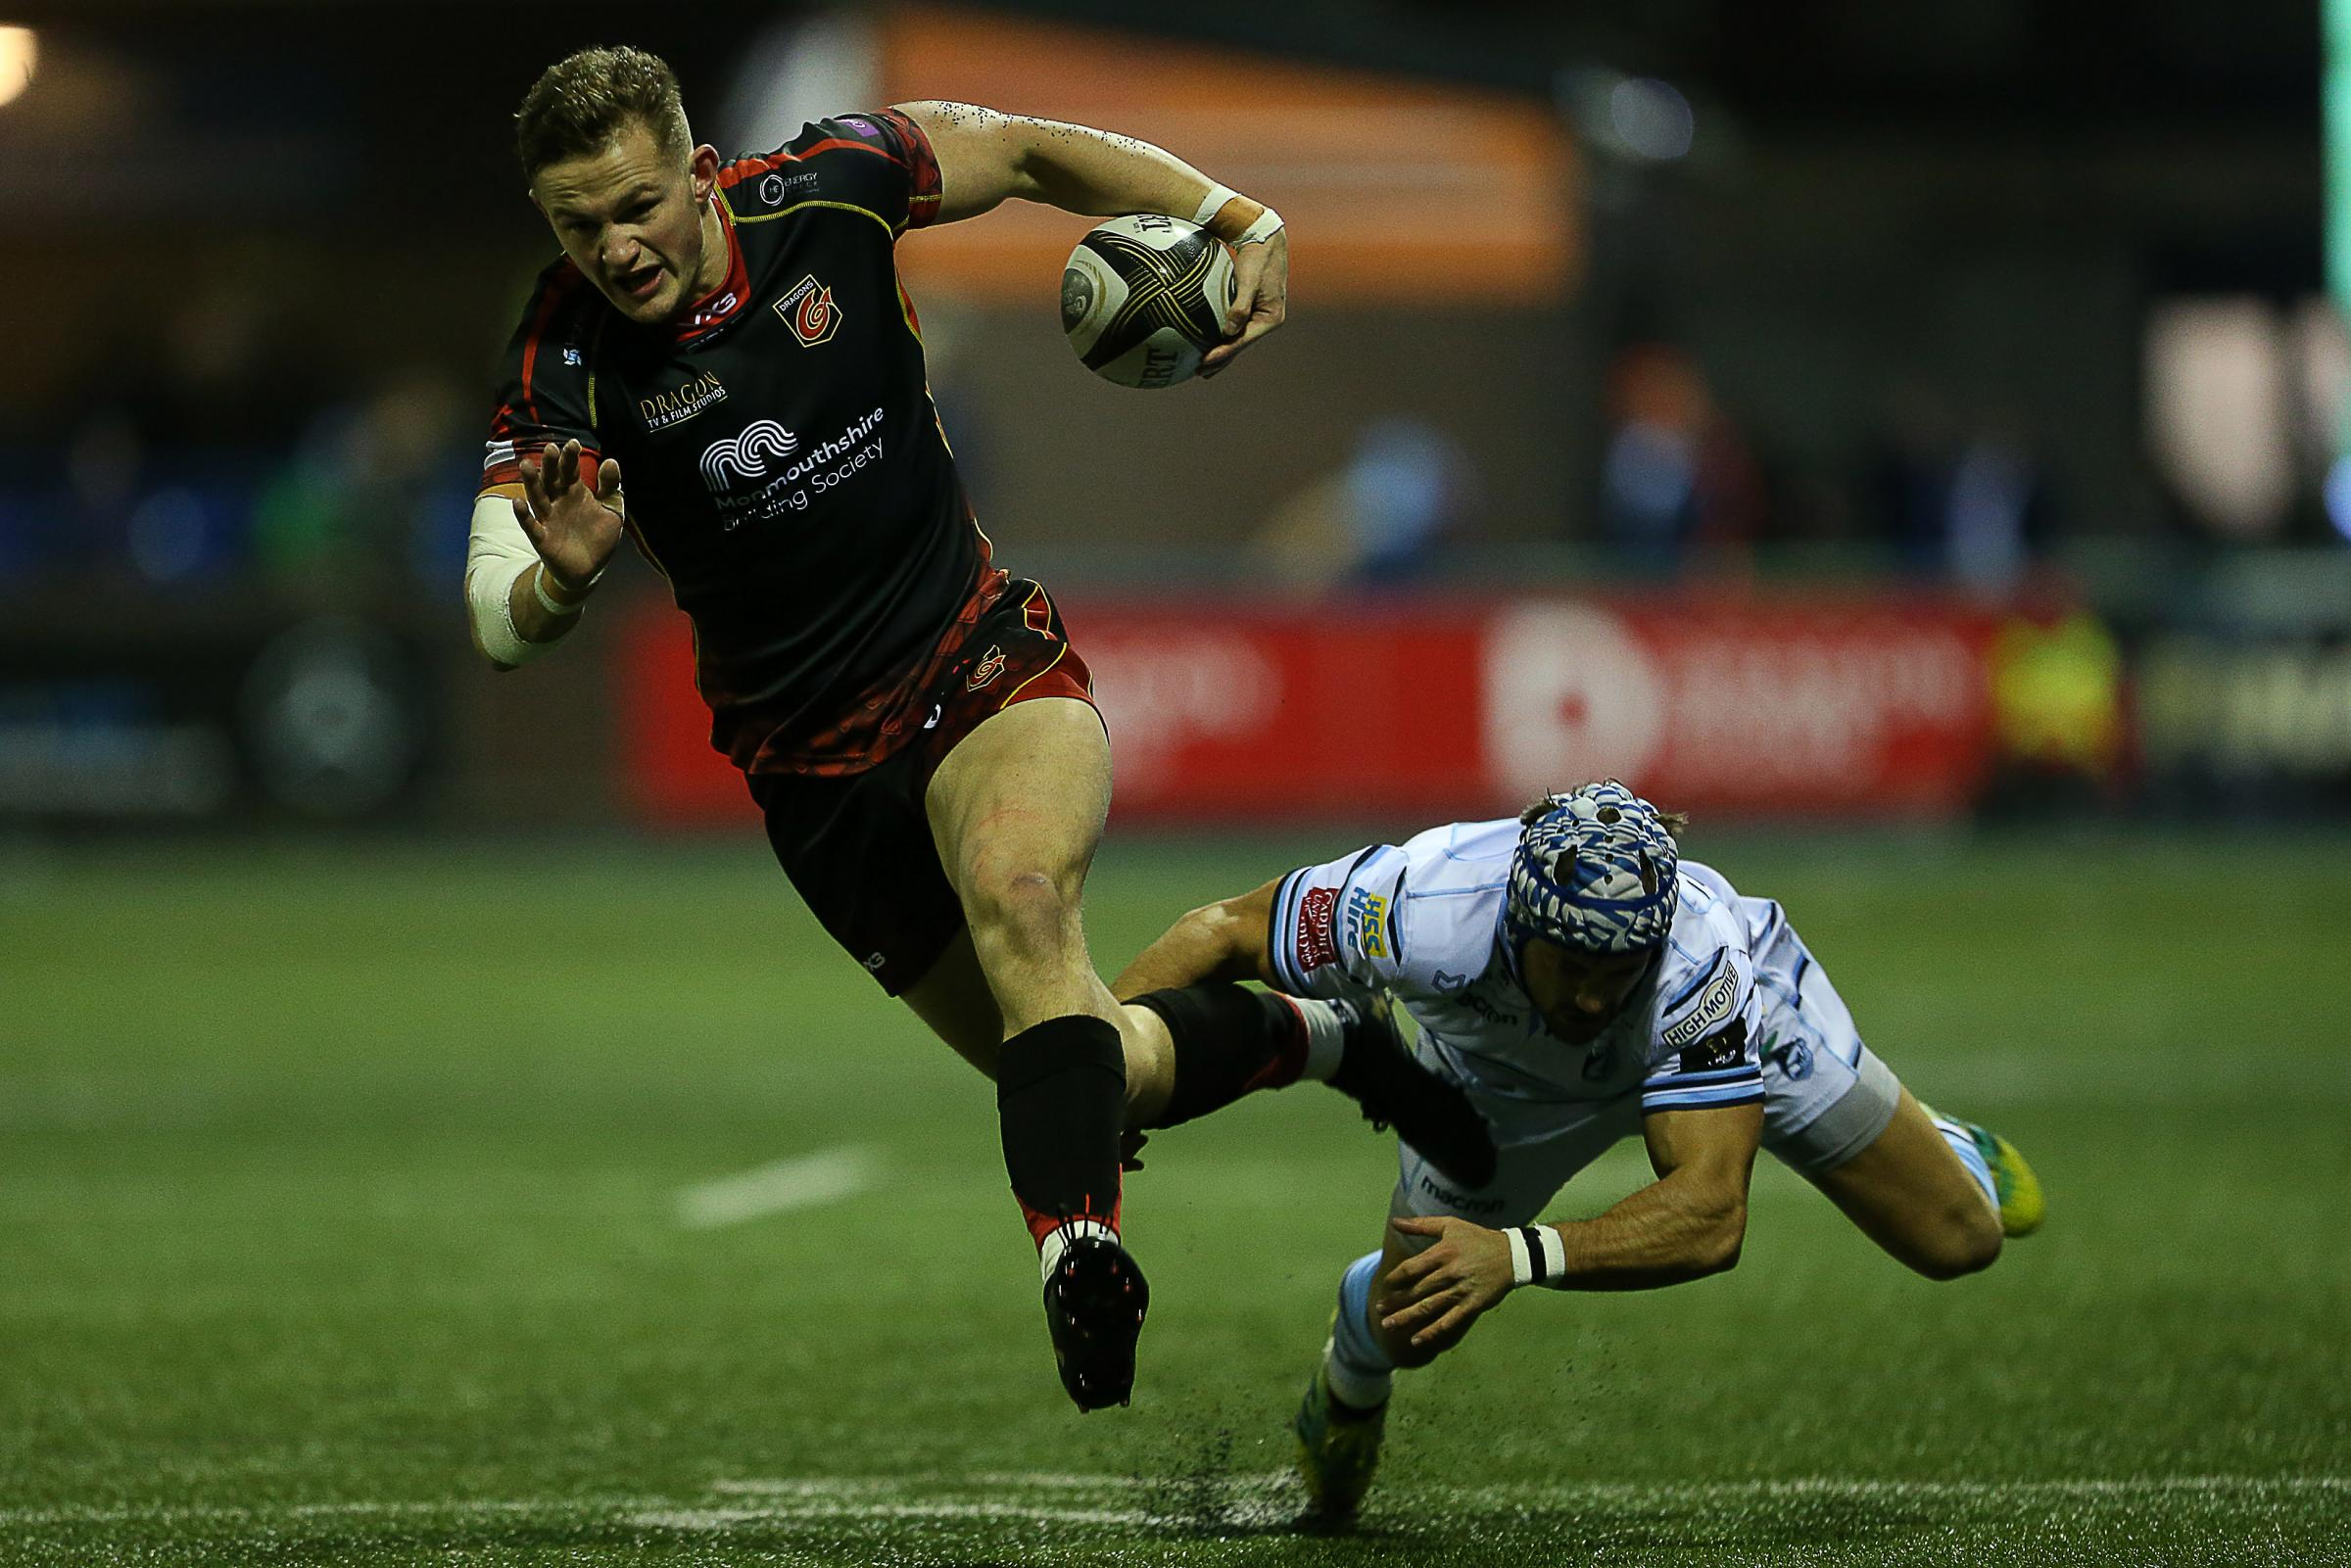 Crushing blow for Dragons as Wales ace Hallam Amos leaves for fierce rivals Cardiff Blues